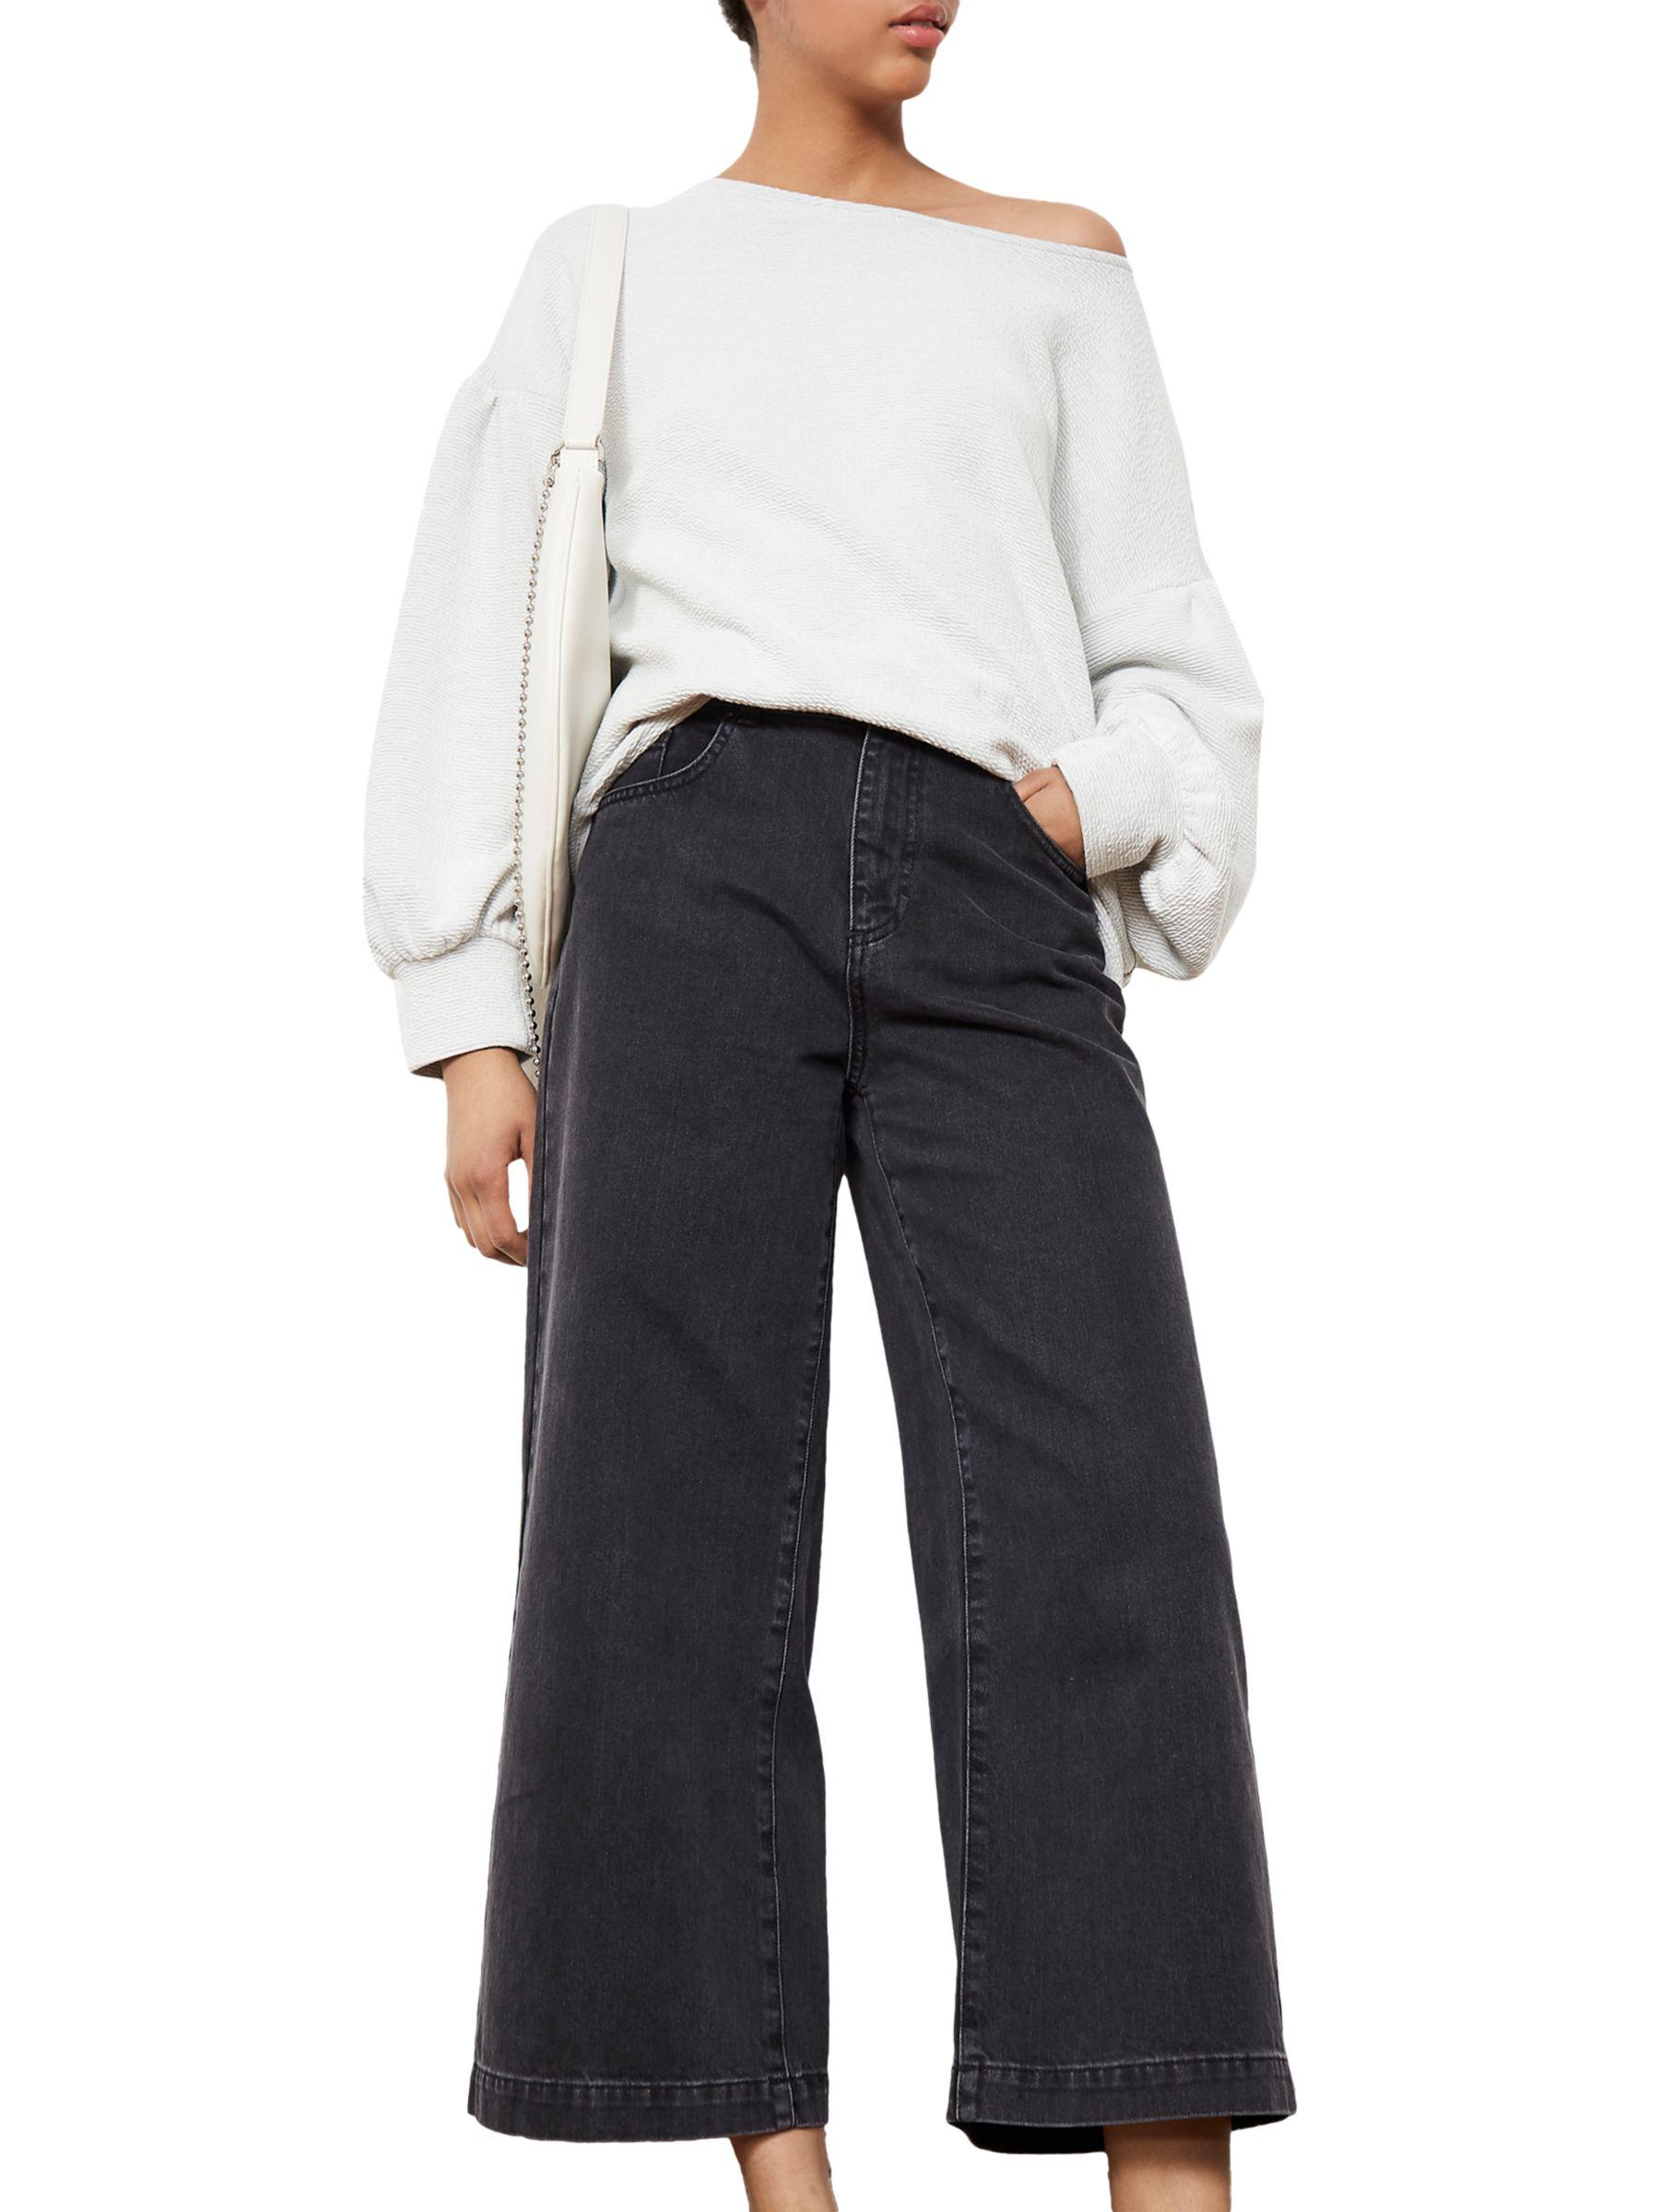 c87e1835de0 French Connection. Women's White Ellen Textured Jumper. £65 £19 From John  Lewis and Partners